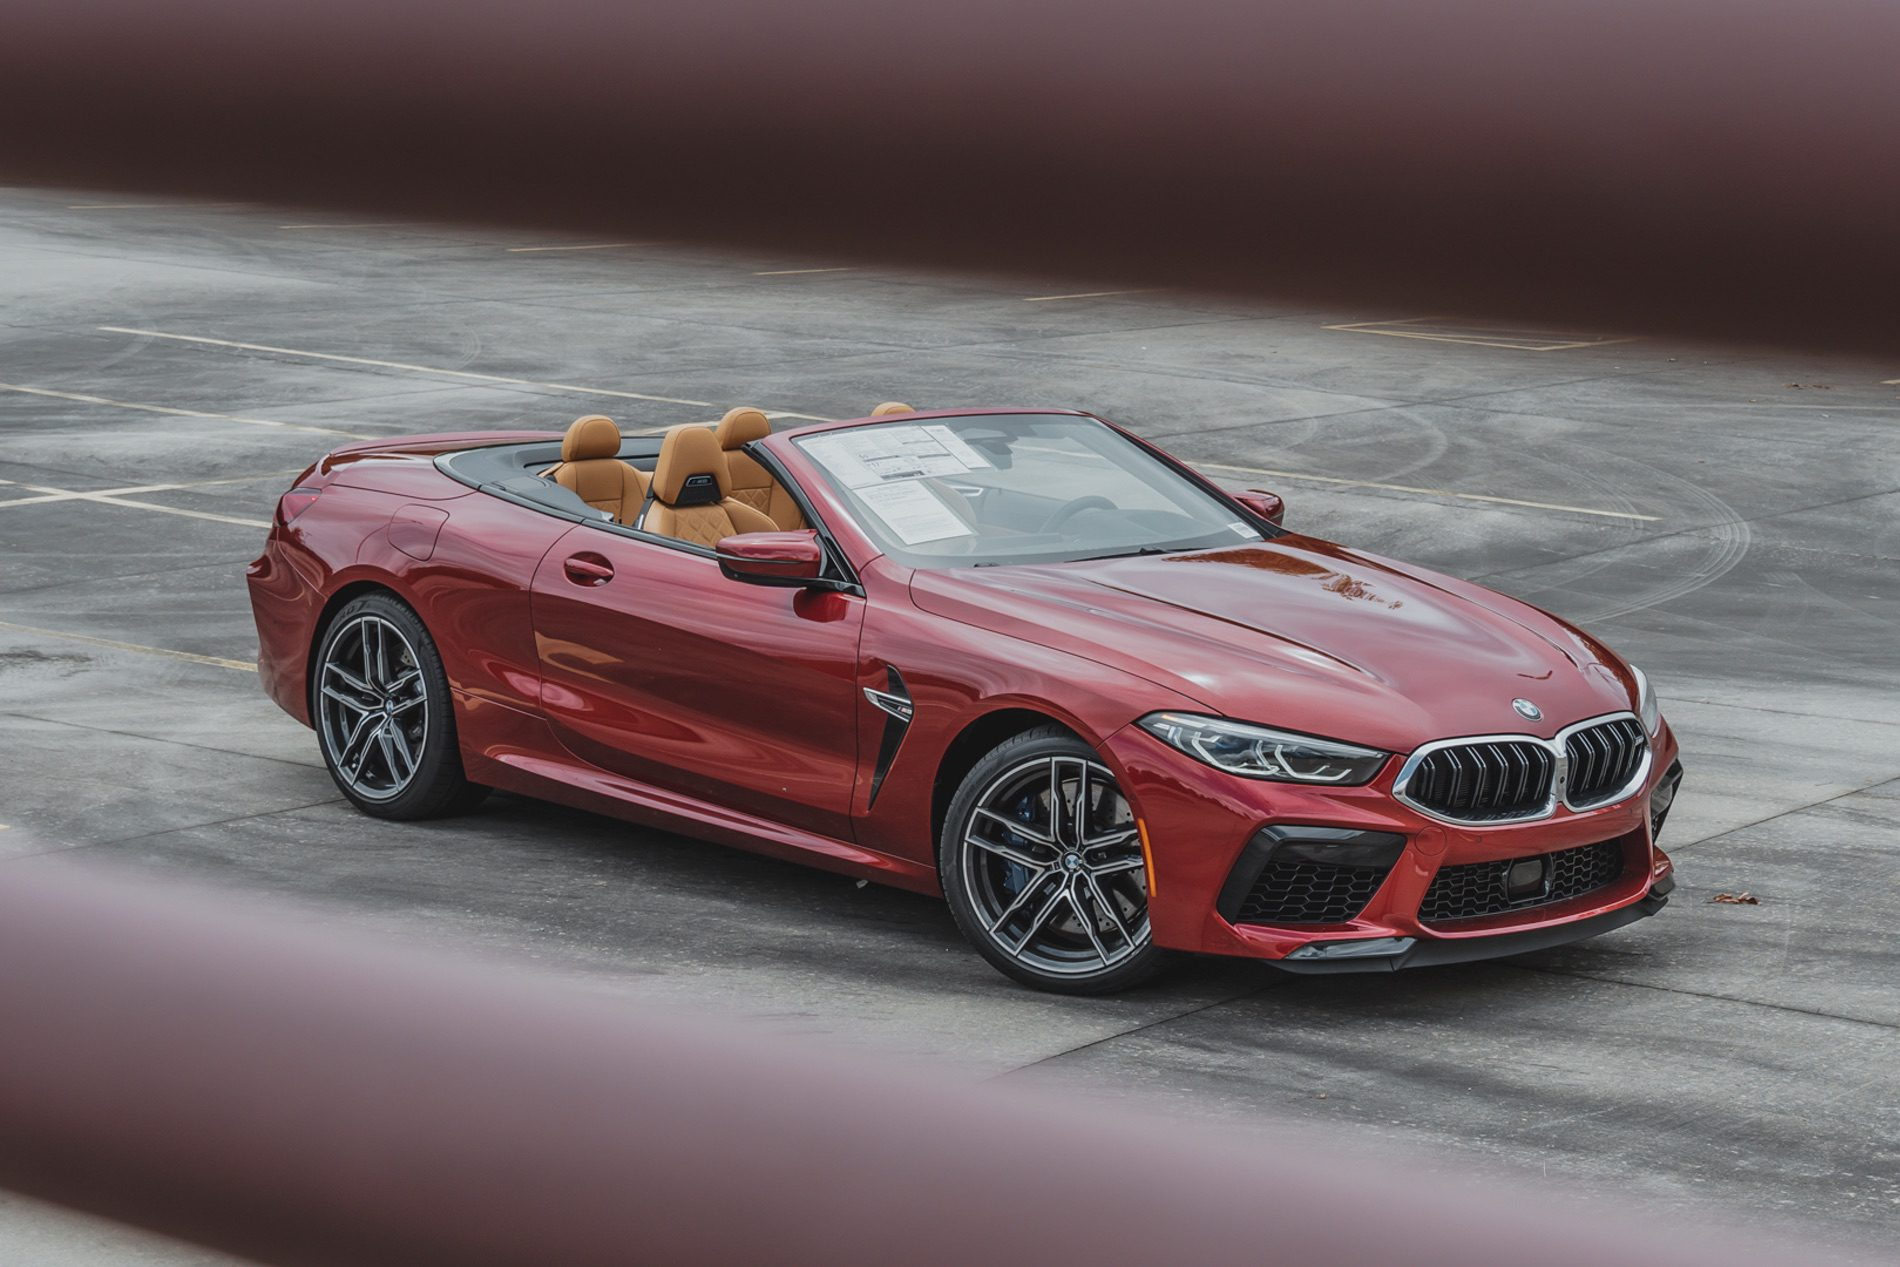 2020 Bmw M8 Convertible Looks Beautiful In The Motegi Red